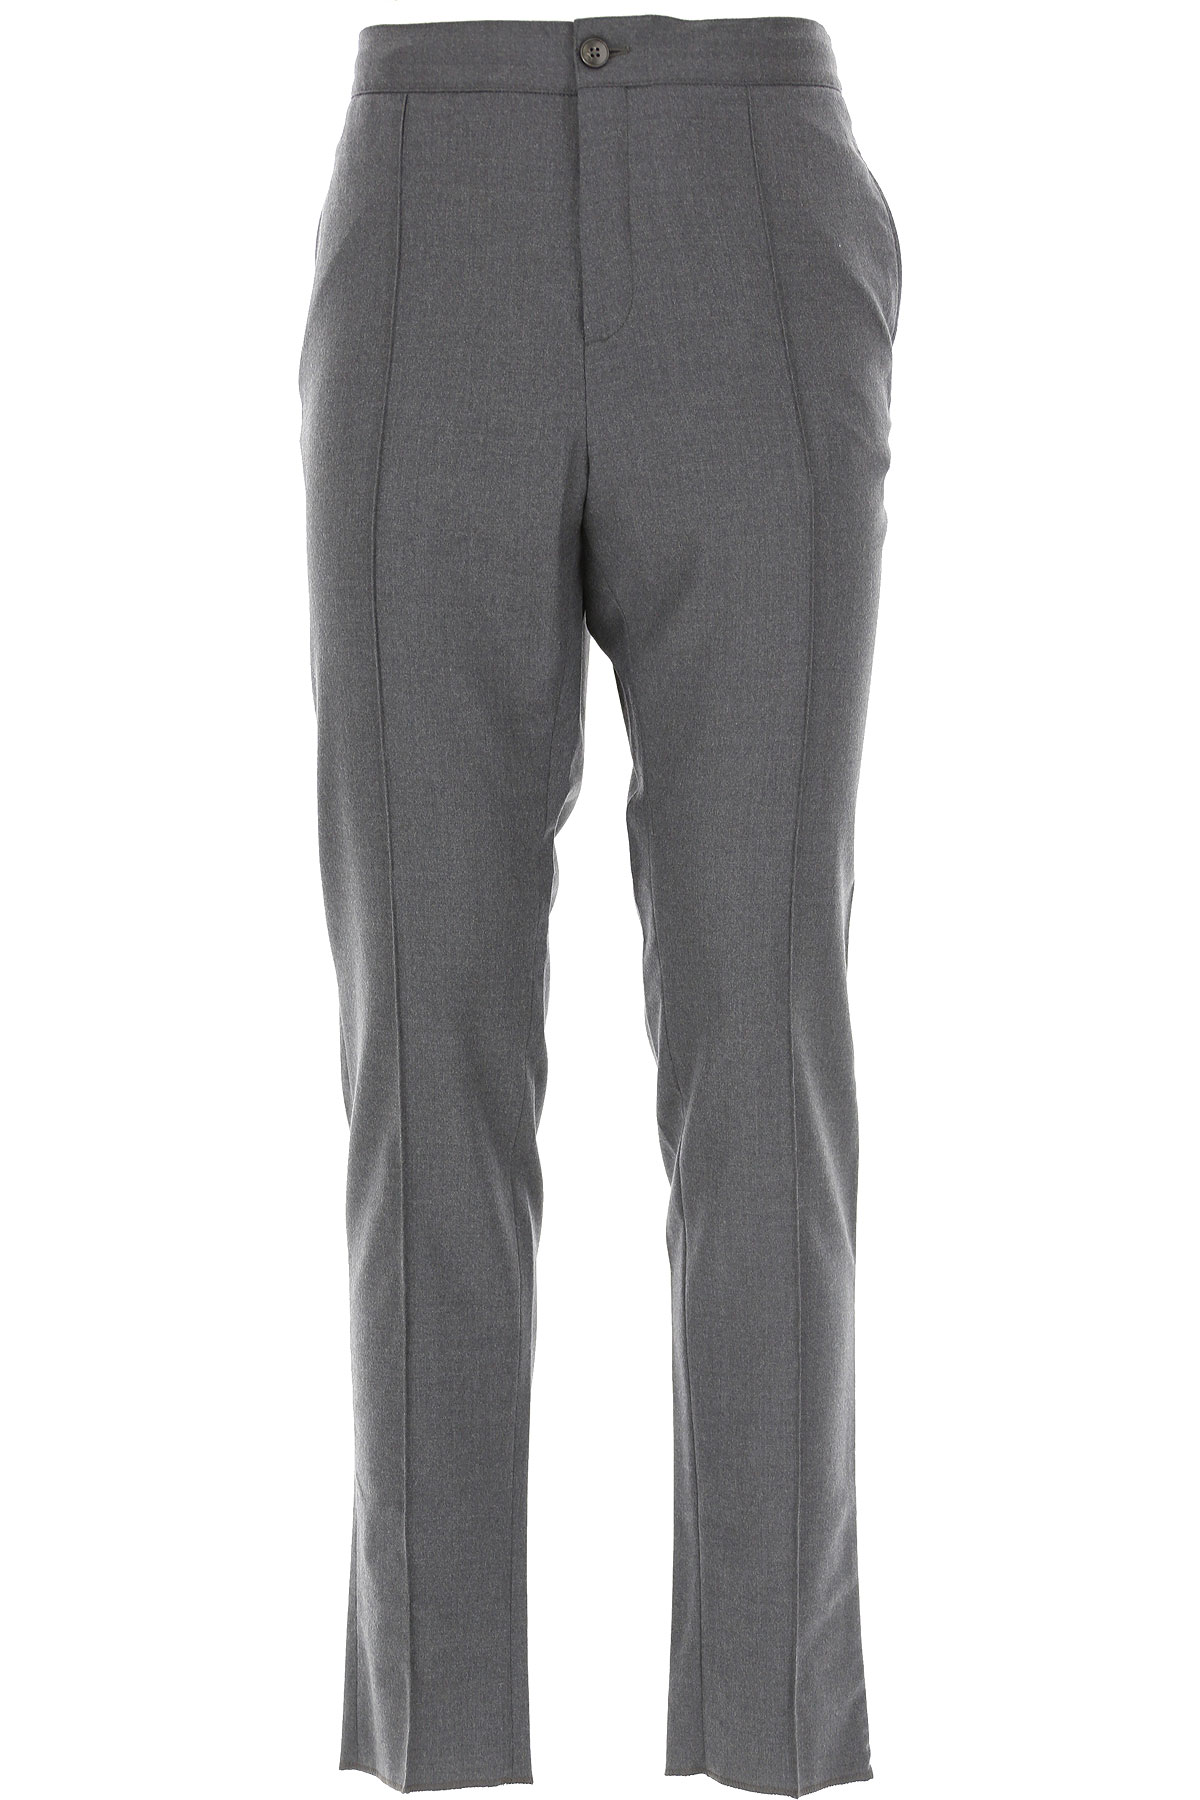 Ermenegildo Zegna Pants for Men, Dark Grey, Wool, 2019, 30 32